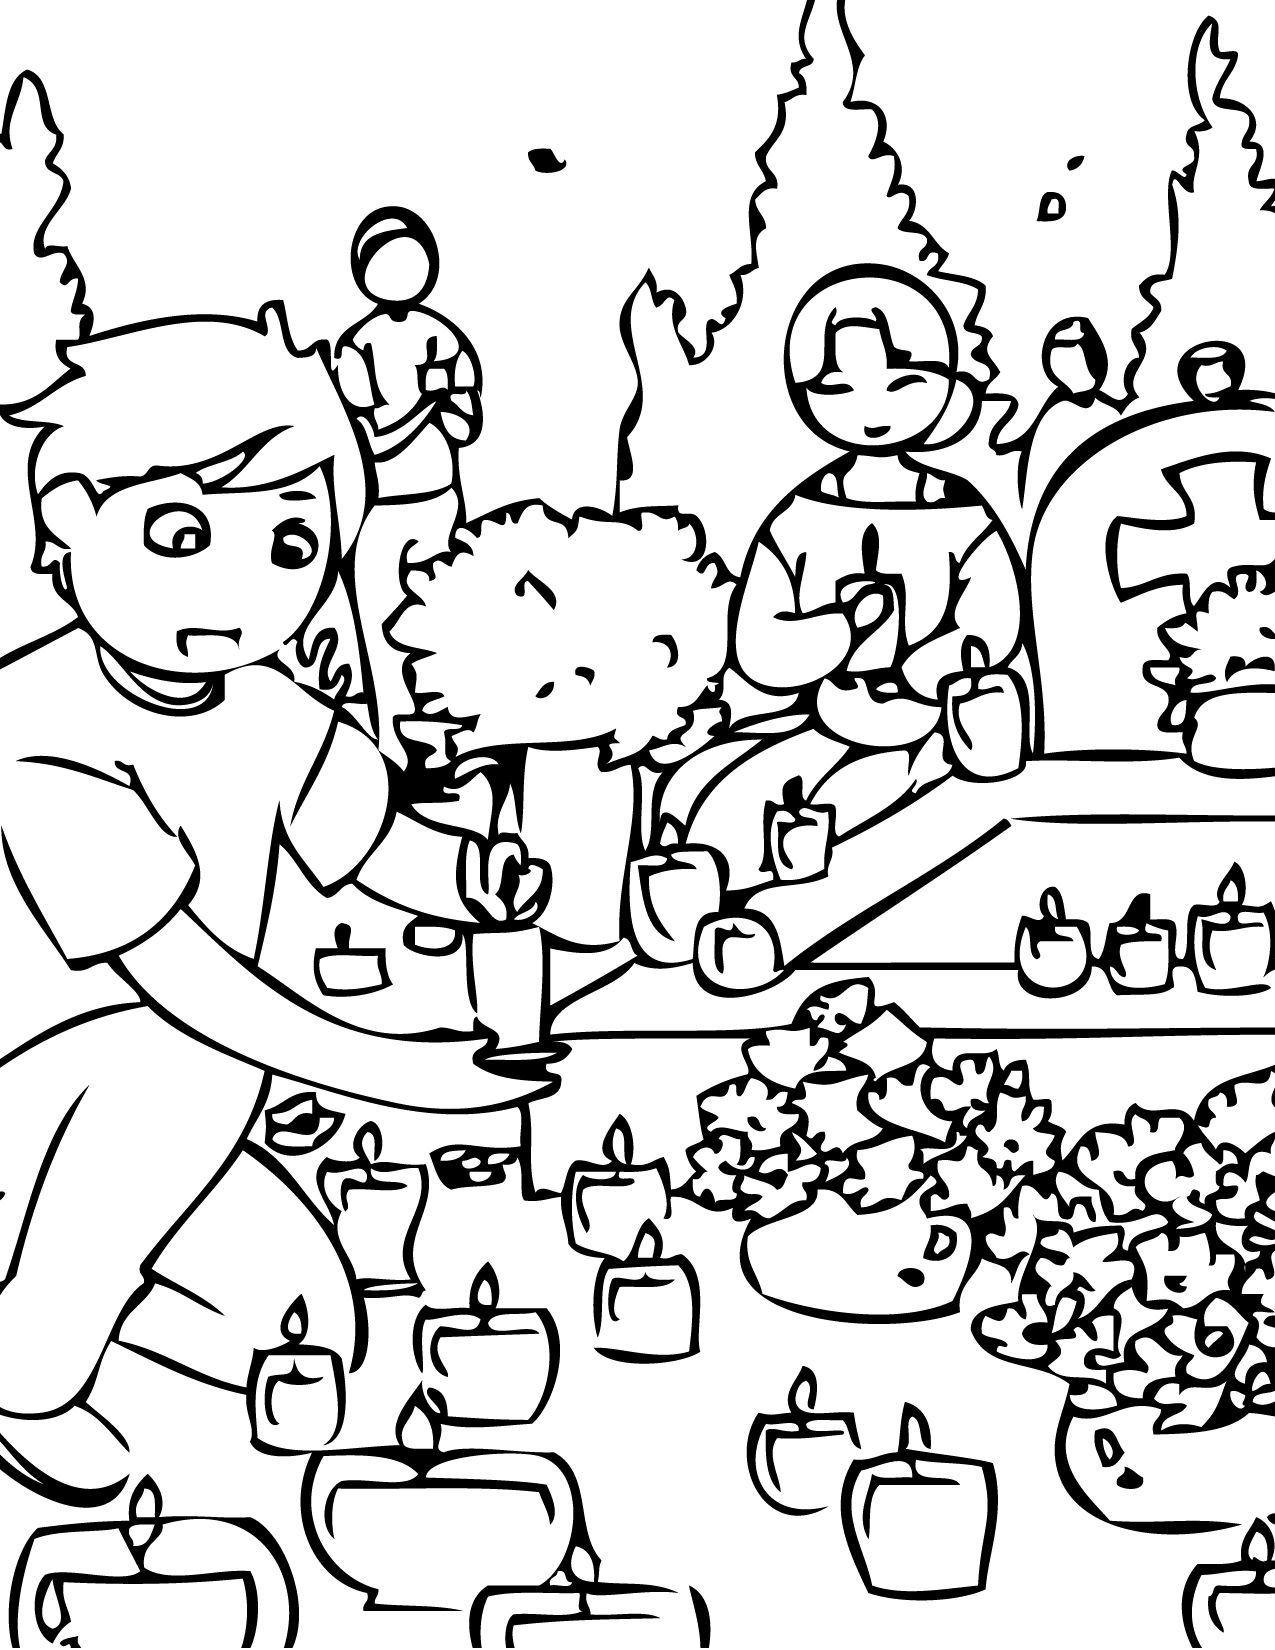 All saints day coloring pages coloring home Coloring book day